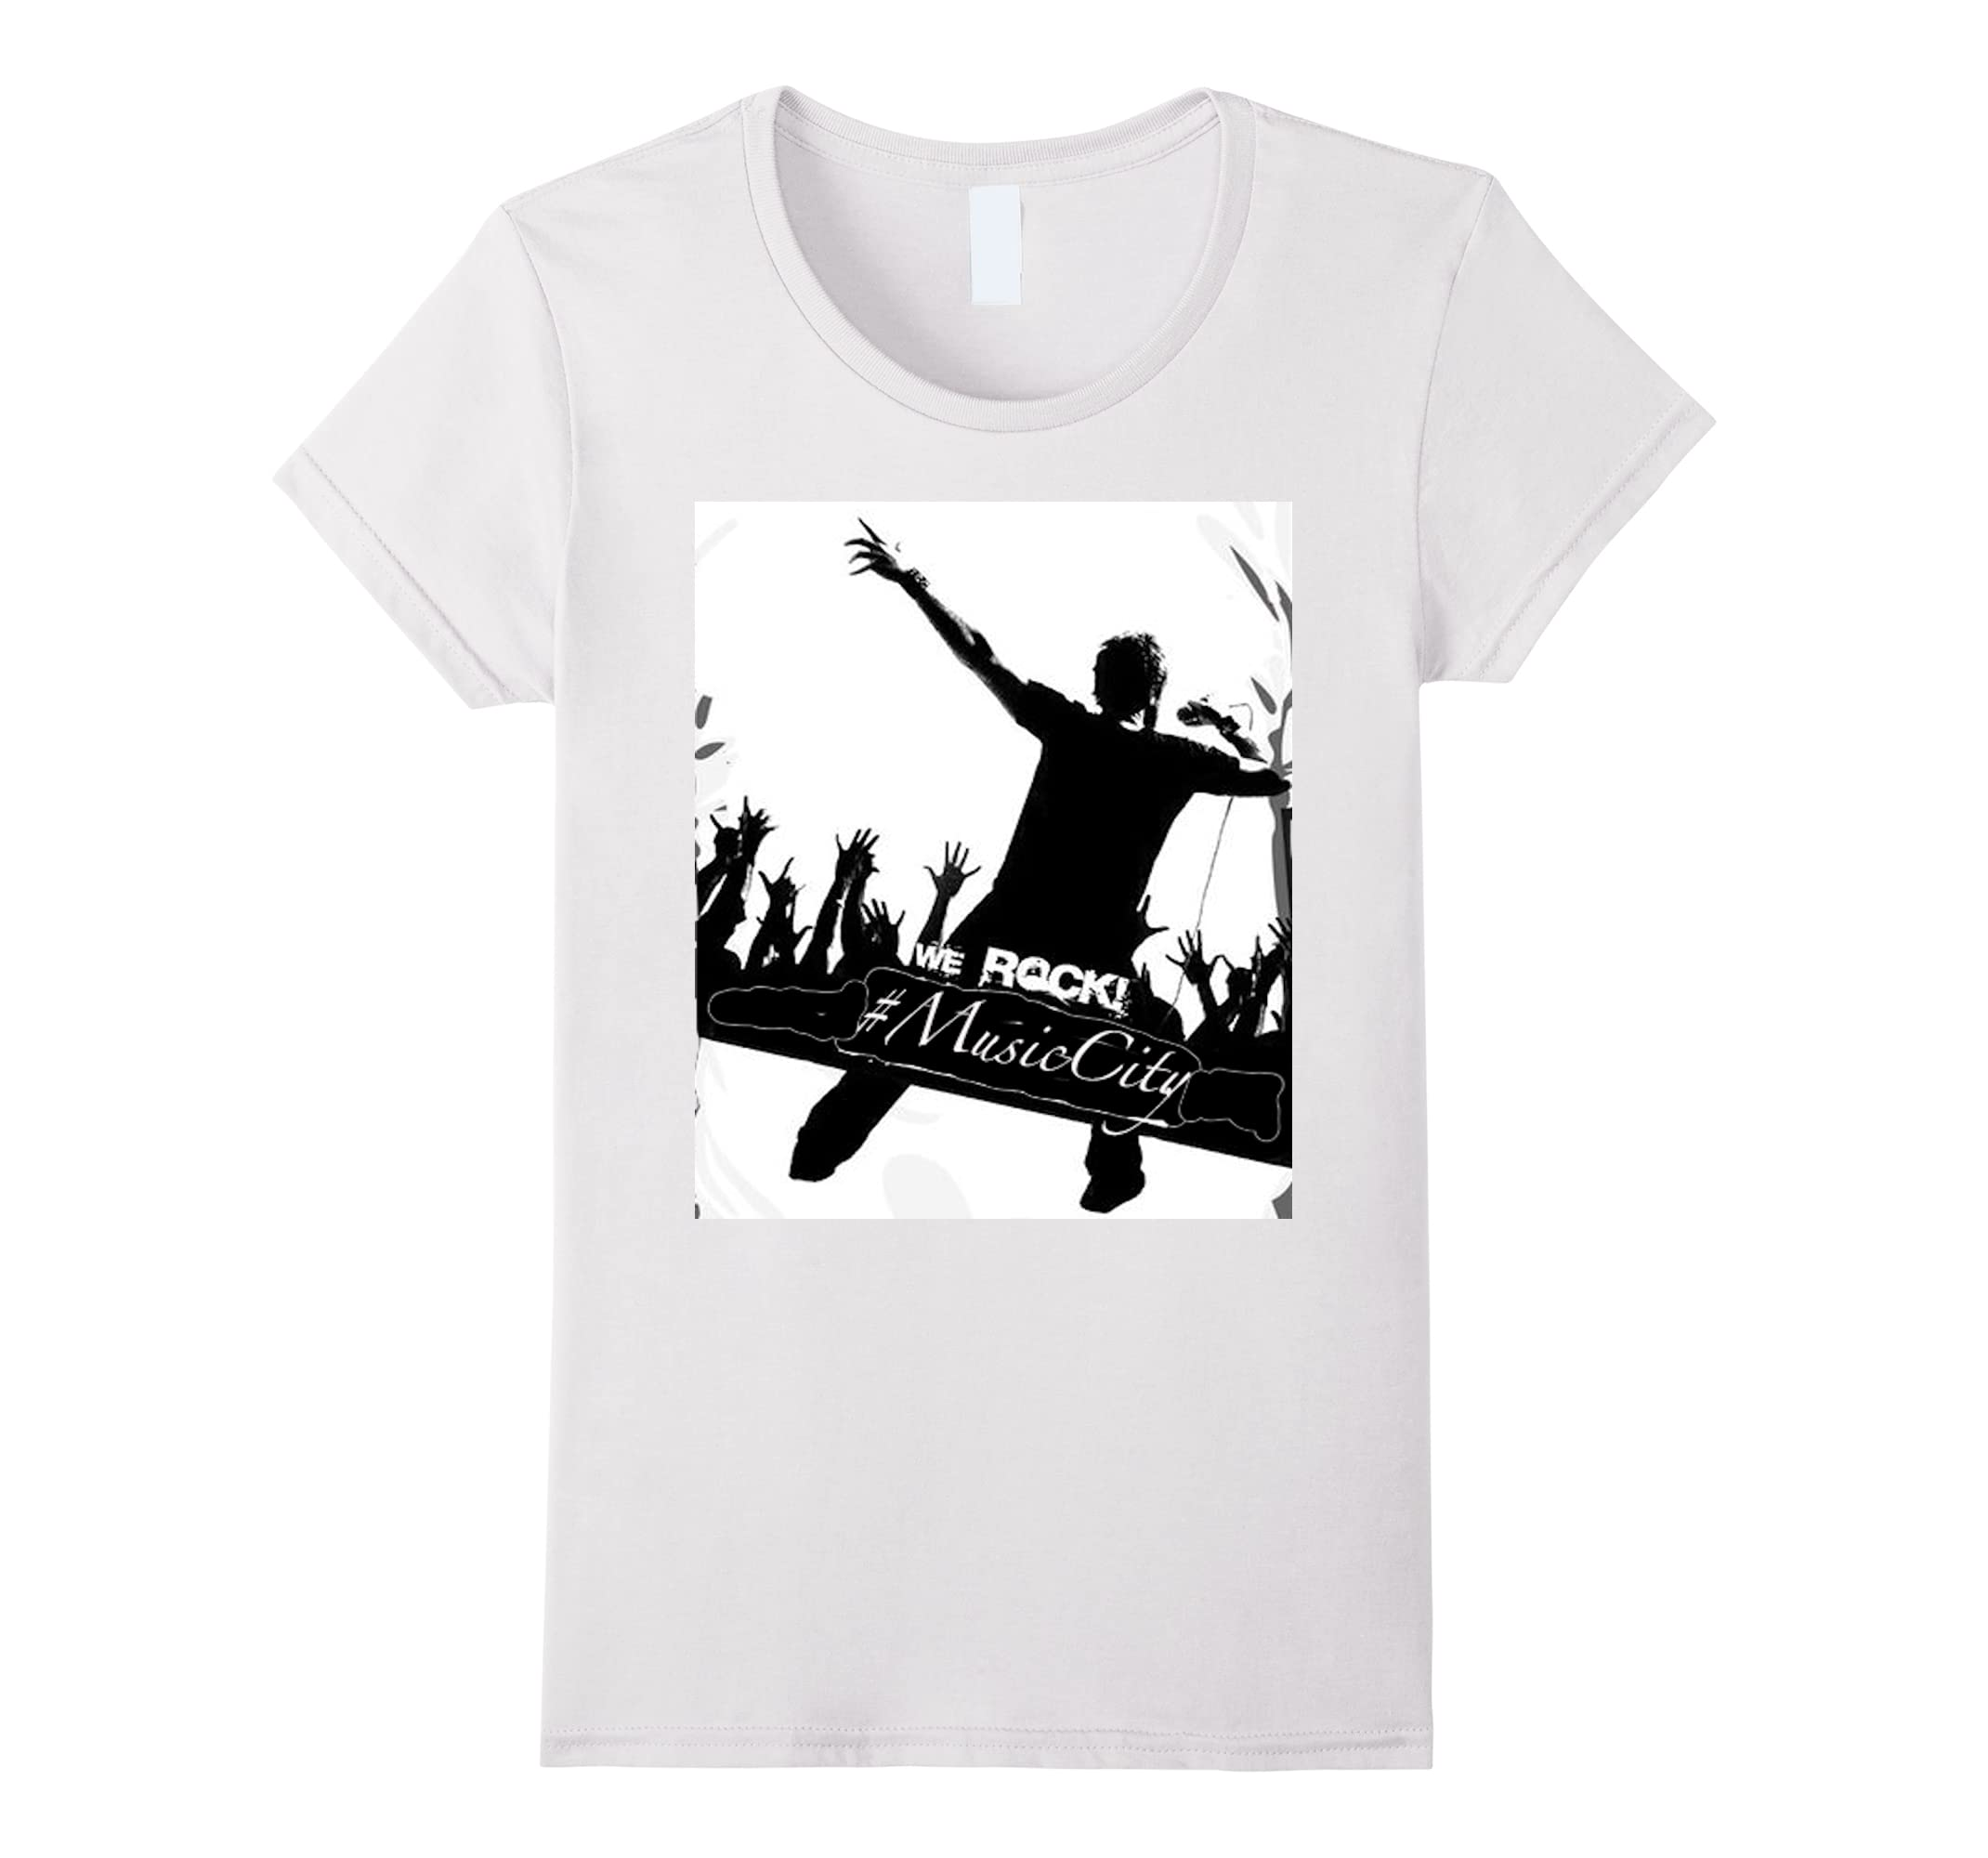 Motivated Elite Music T shirts Women-Teesml